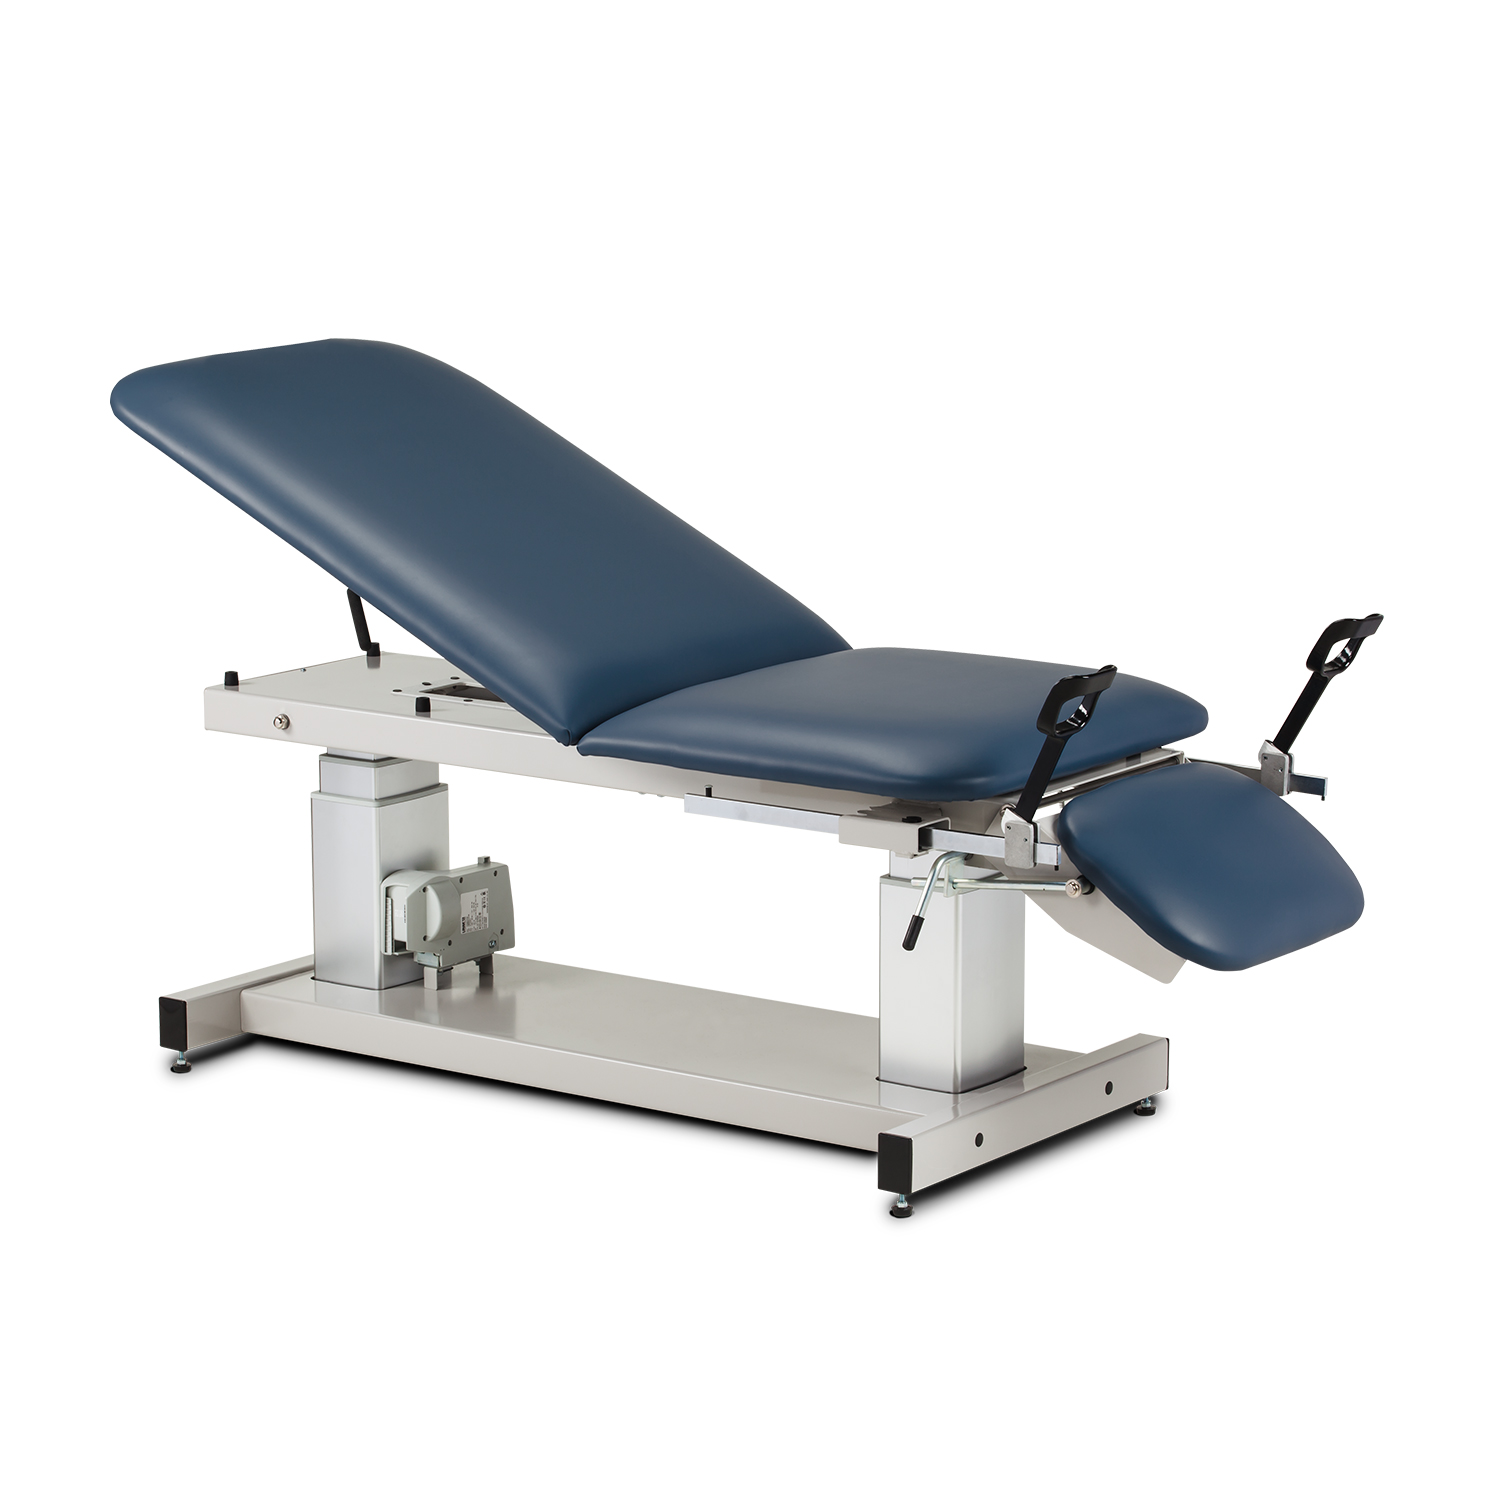 Clinton Multi-Use Ultrasound Table - 80069